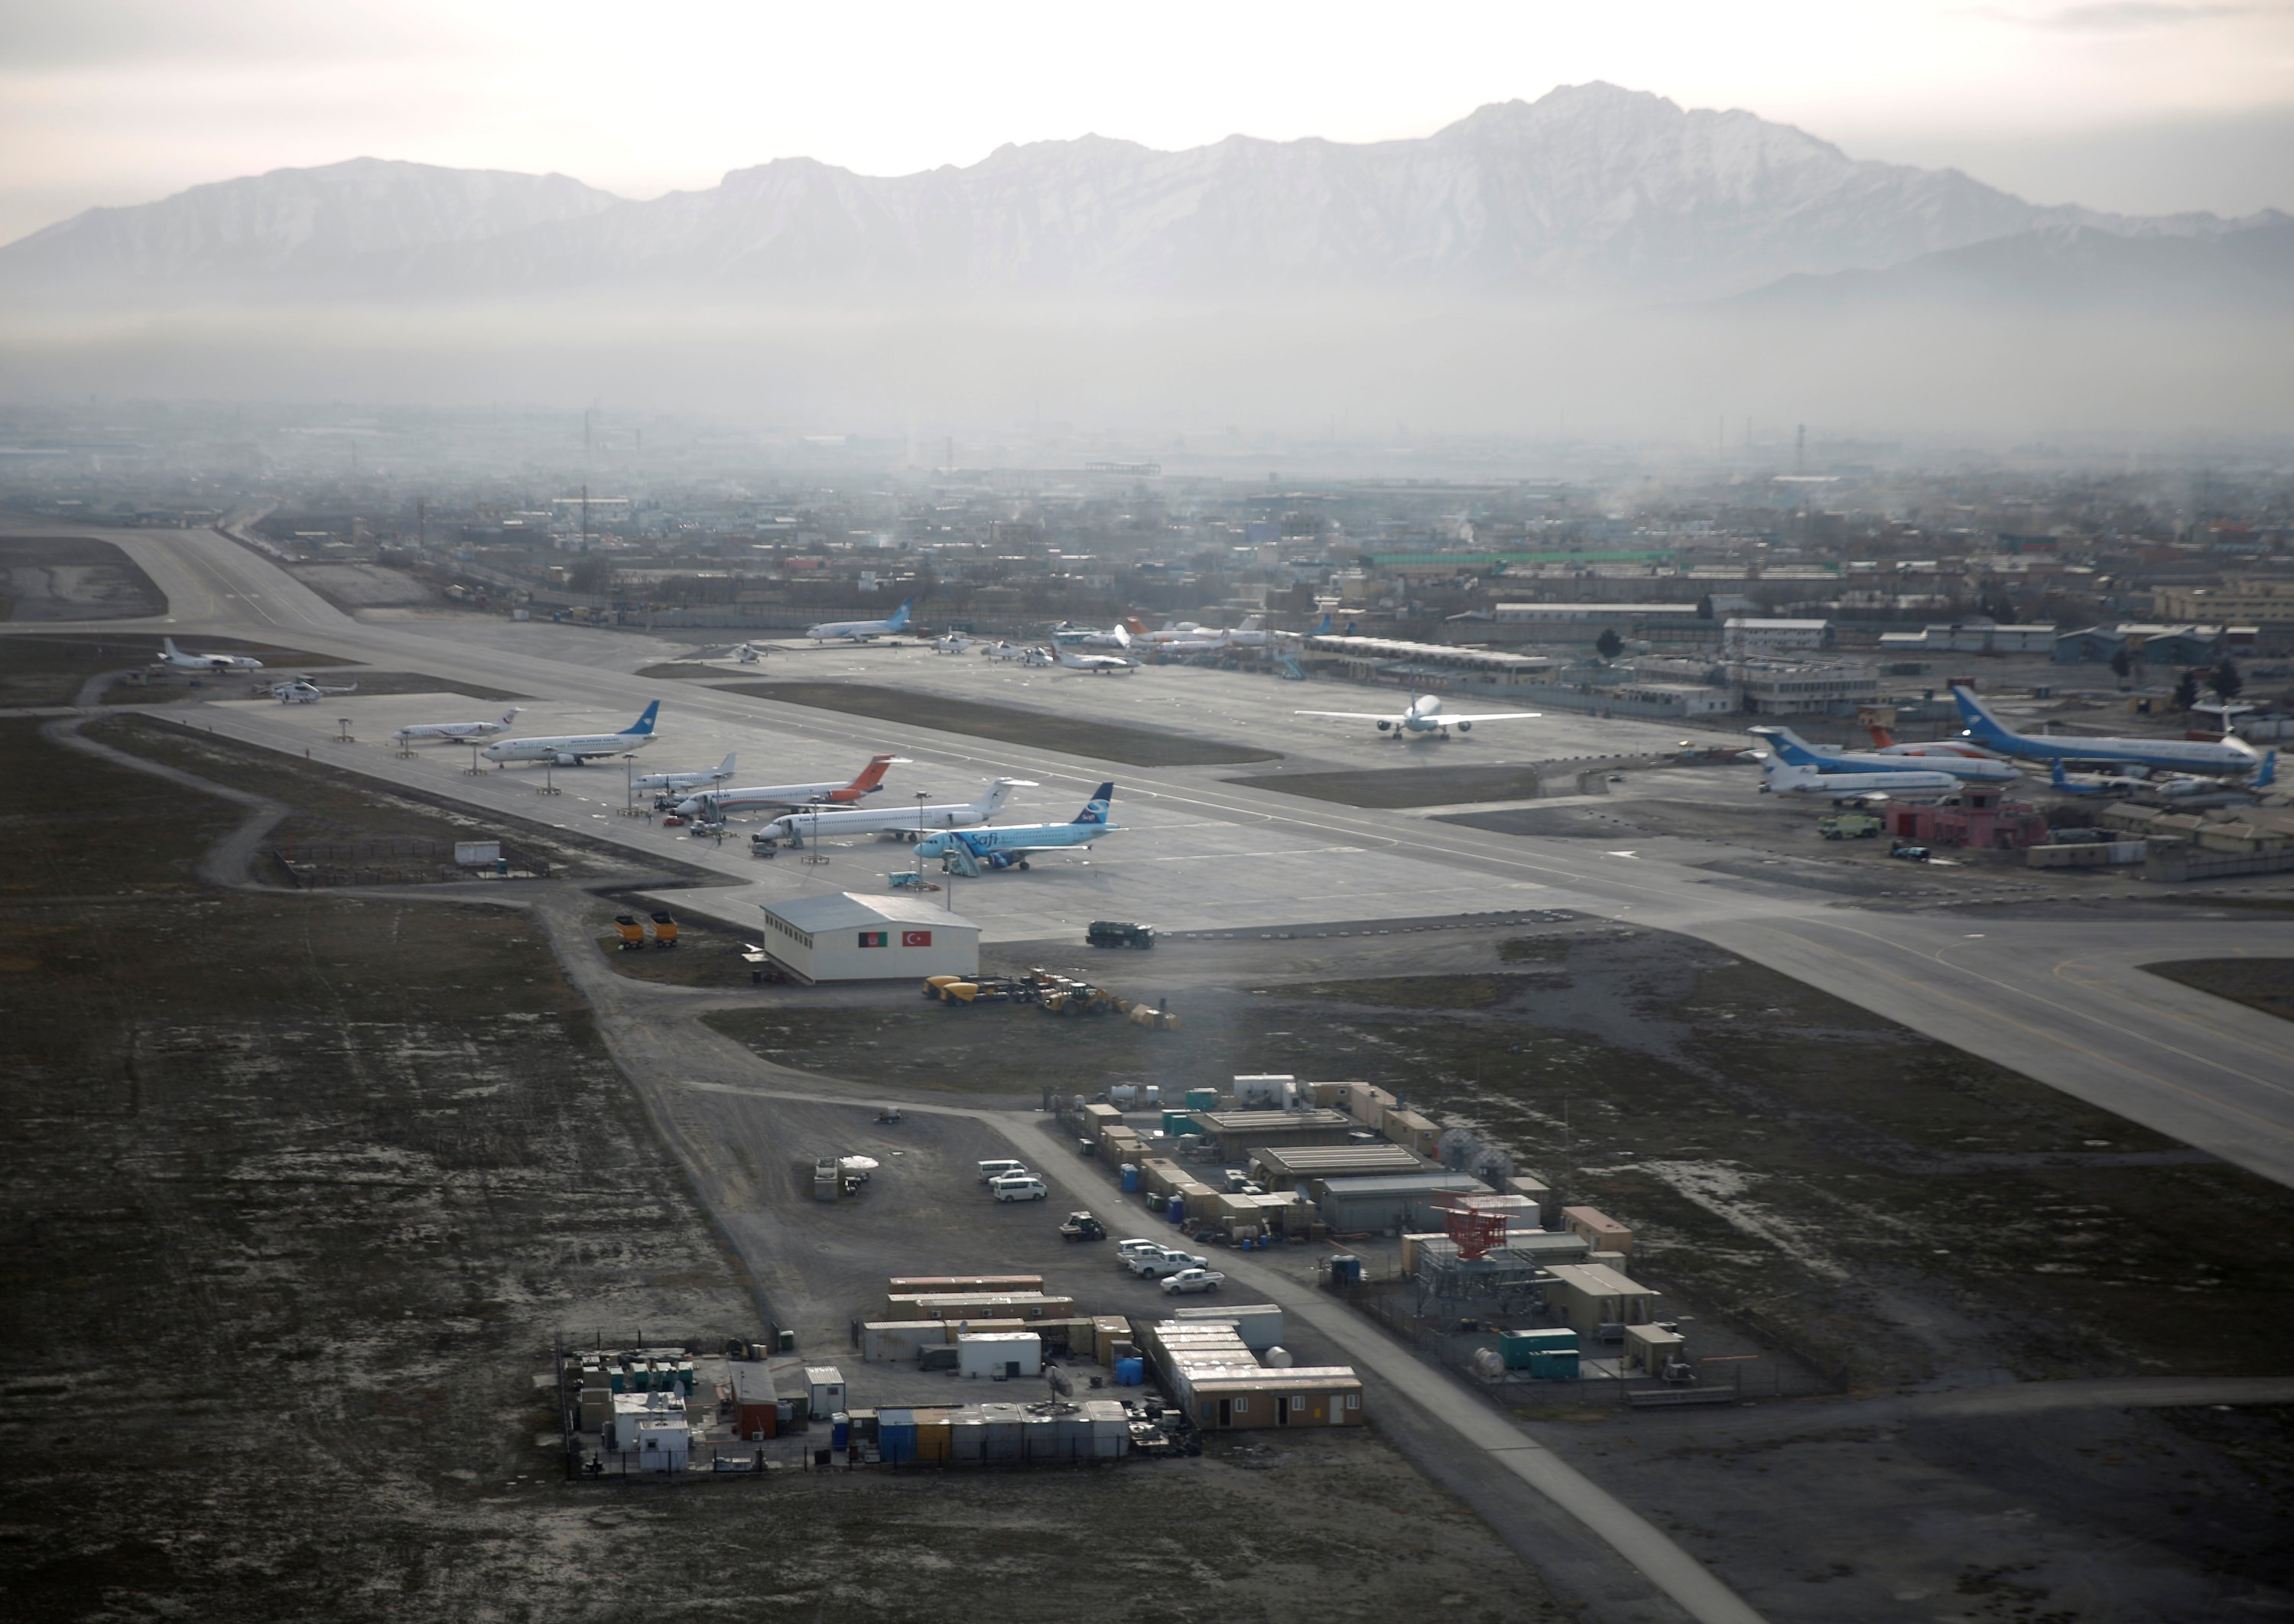 An aerial view of the Hamid Karzai International Airport in Kabul, previously known as Kabul International Airport, in Afghanistan, Feb. 11, 2016. (Reuters Photo)